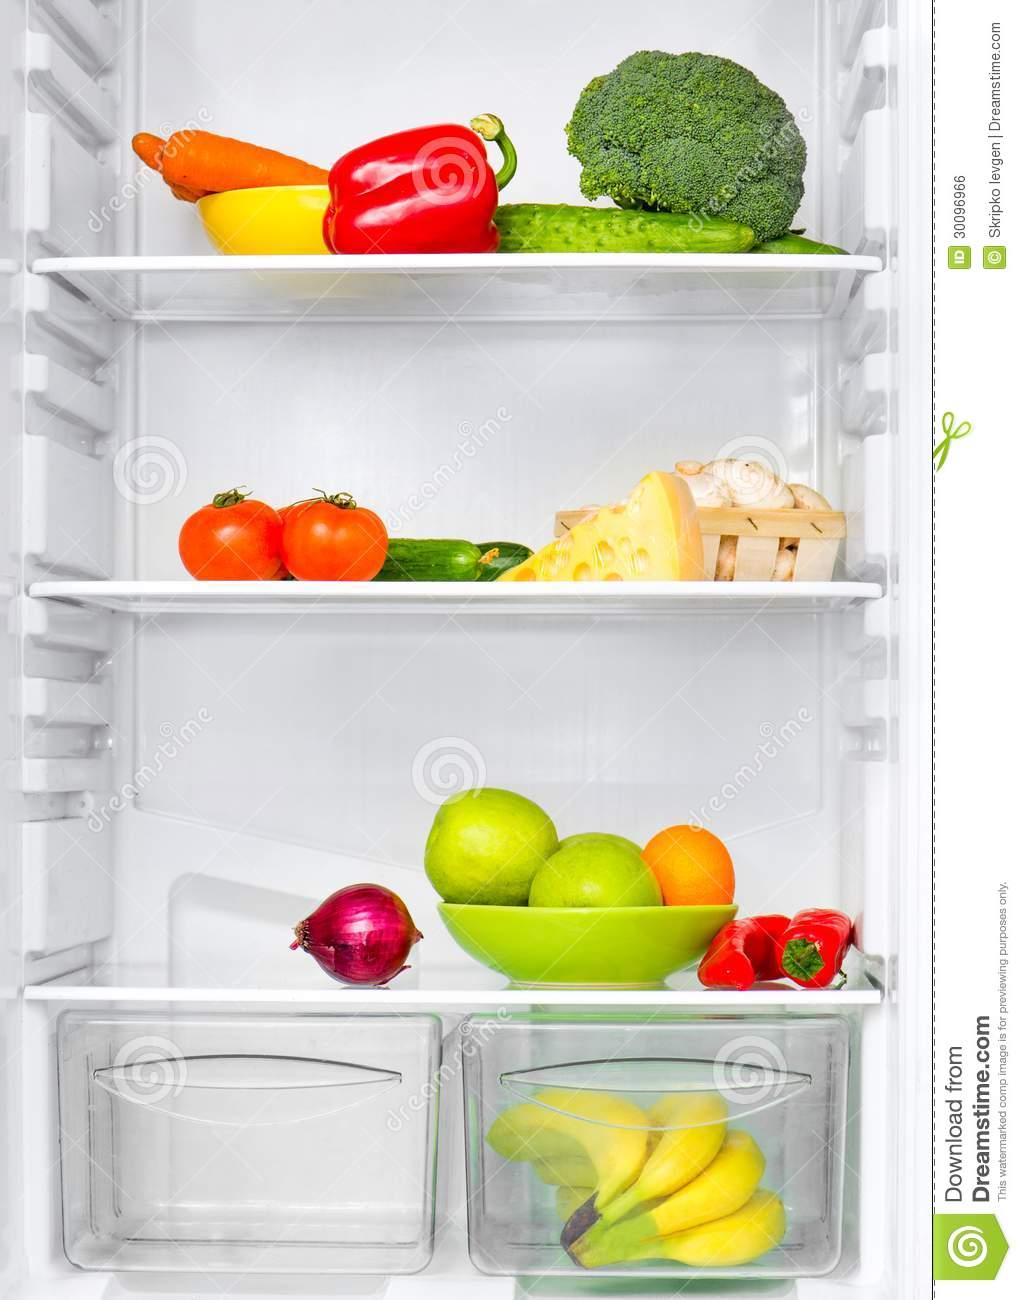 how to keep vegetables fresh in fridge